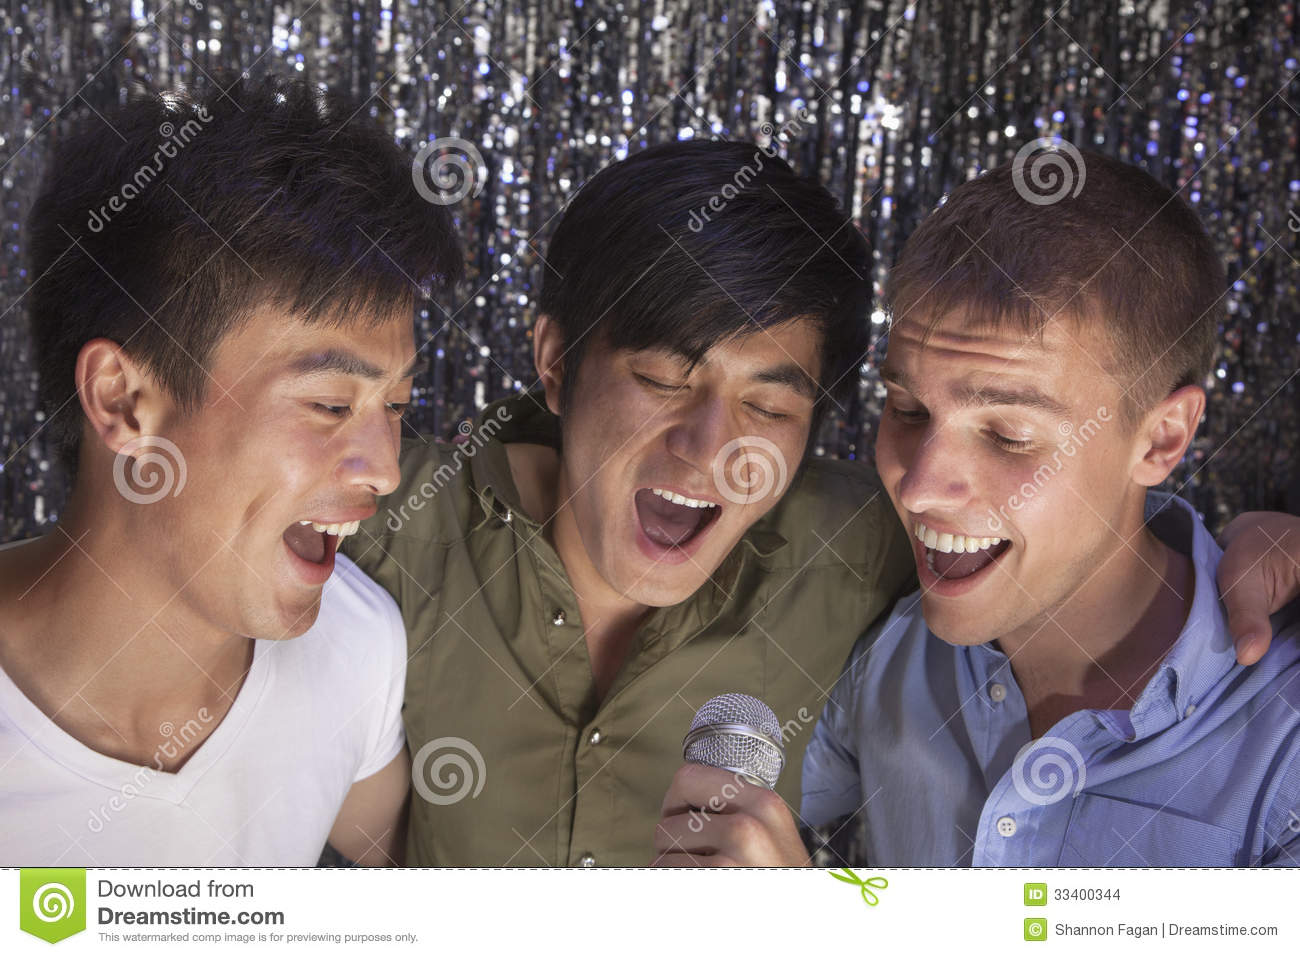 Three friends with arm around each other holding a microphone and singing together at karaoke